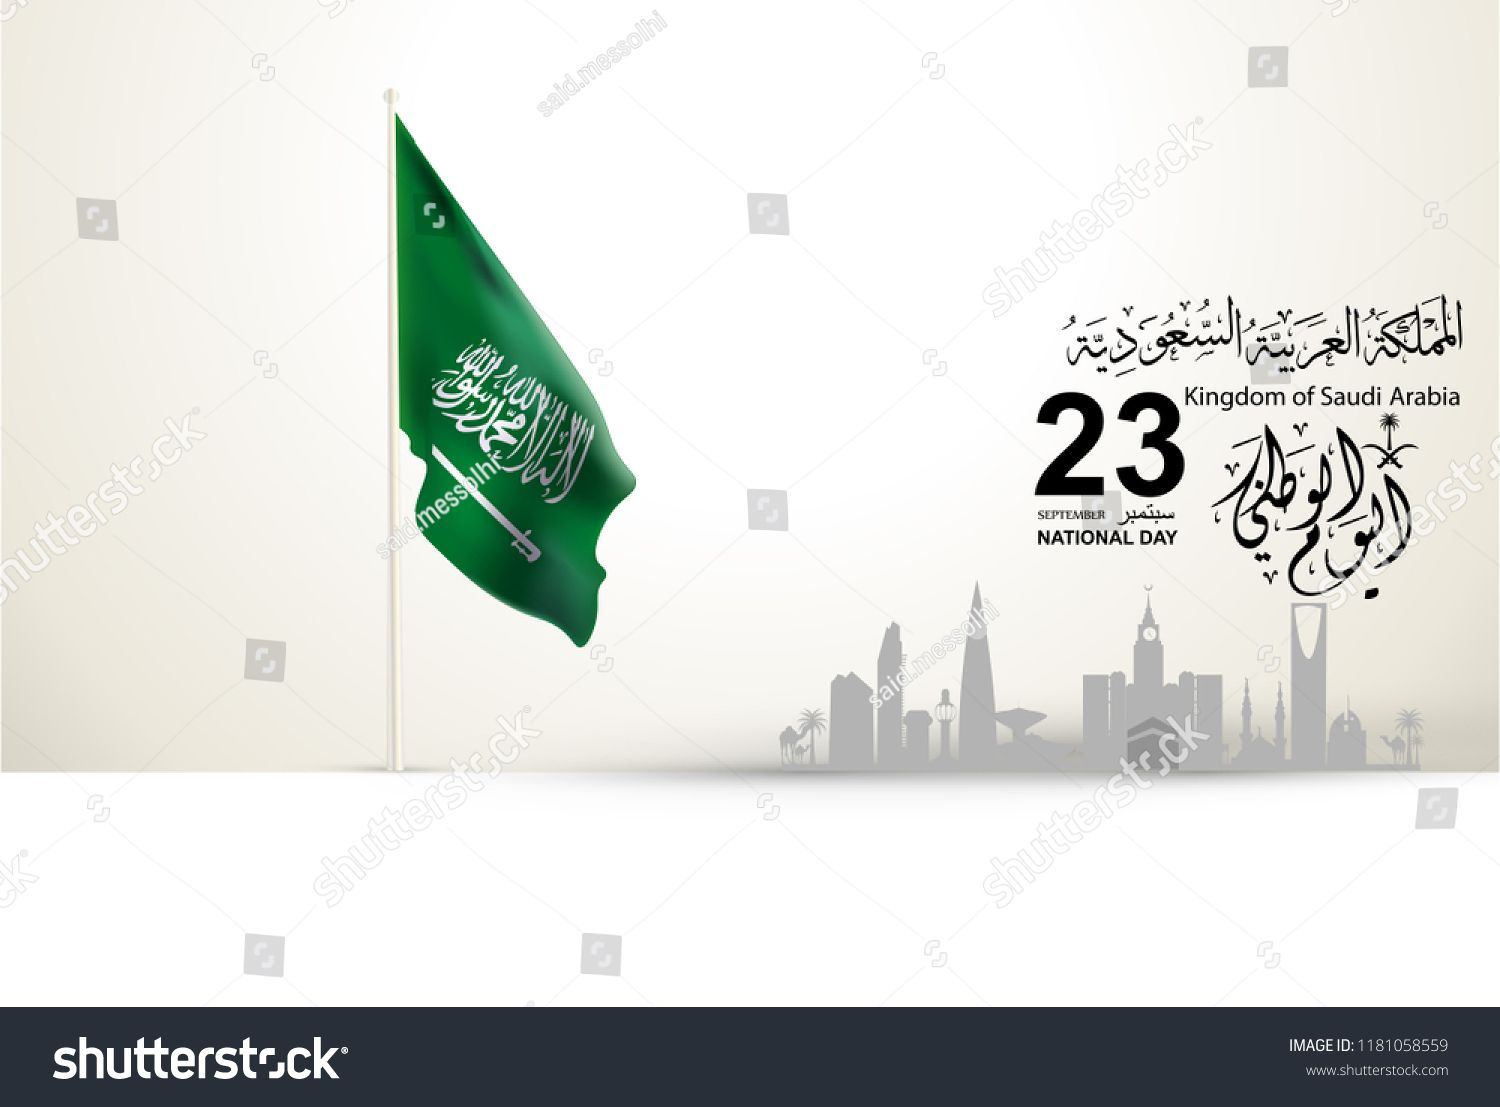 Illustration Of Saudi Arabia National Day 23 Rd September With Vector Arabic Calligraphy Translation Kingdom Of National Day Royalty Free Photos Illustration